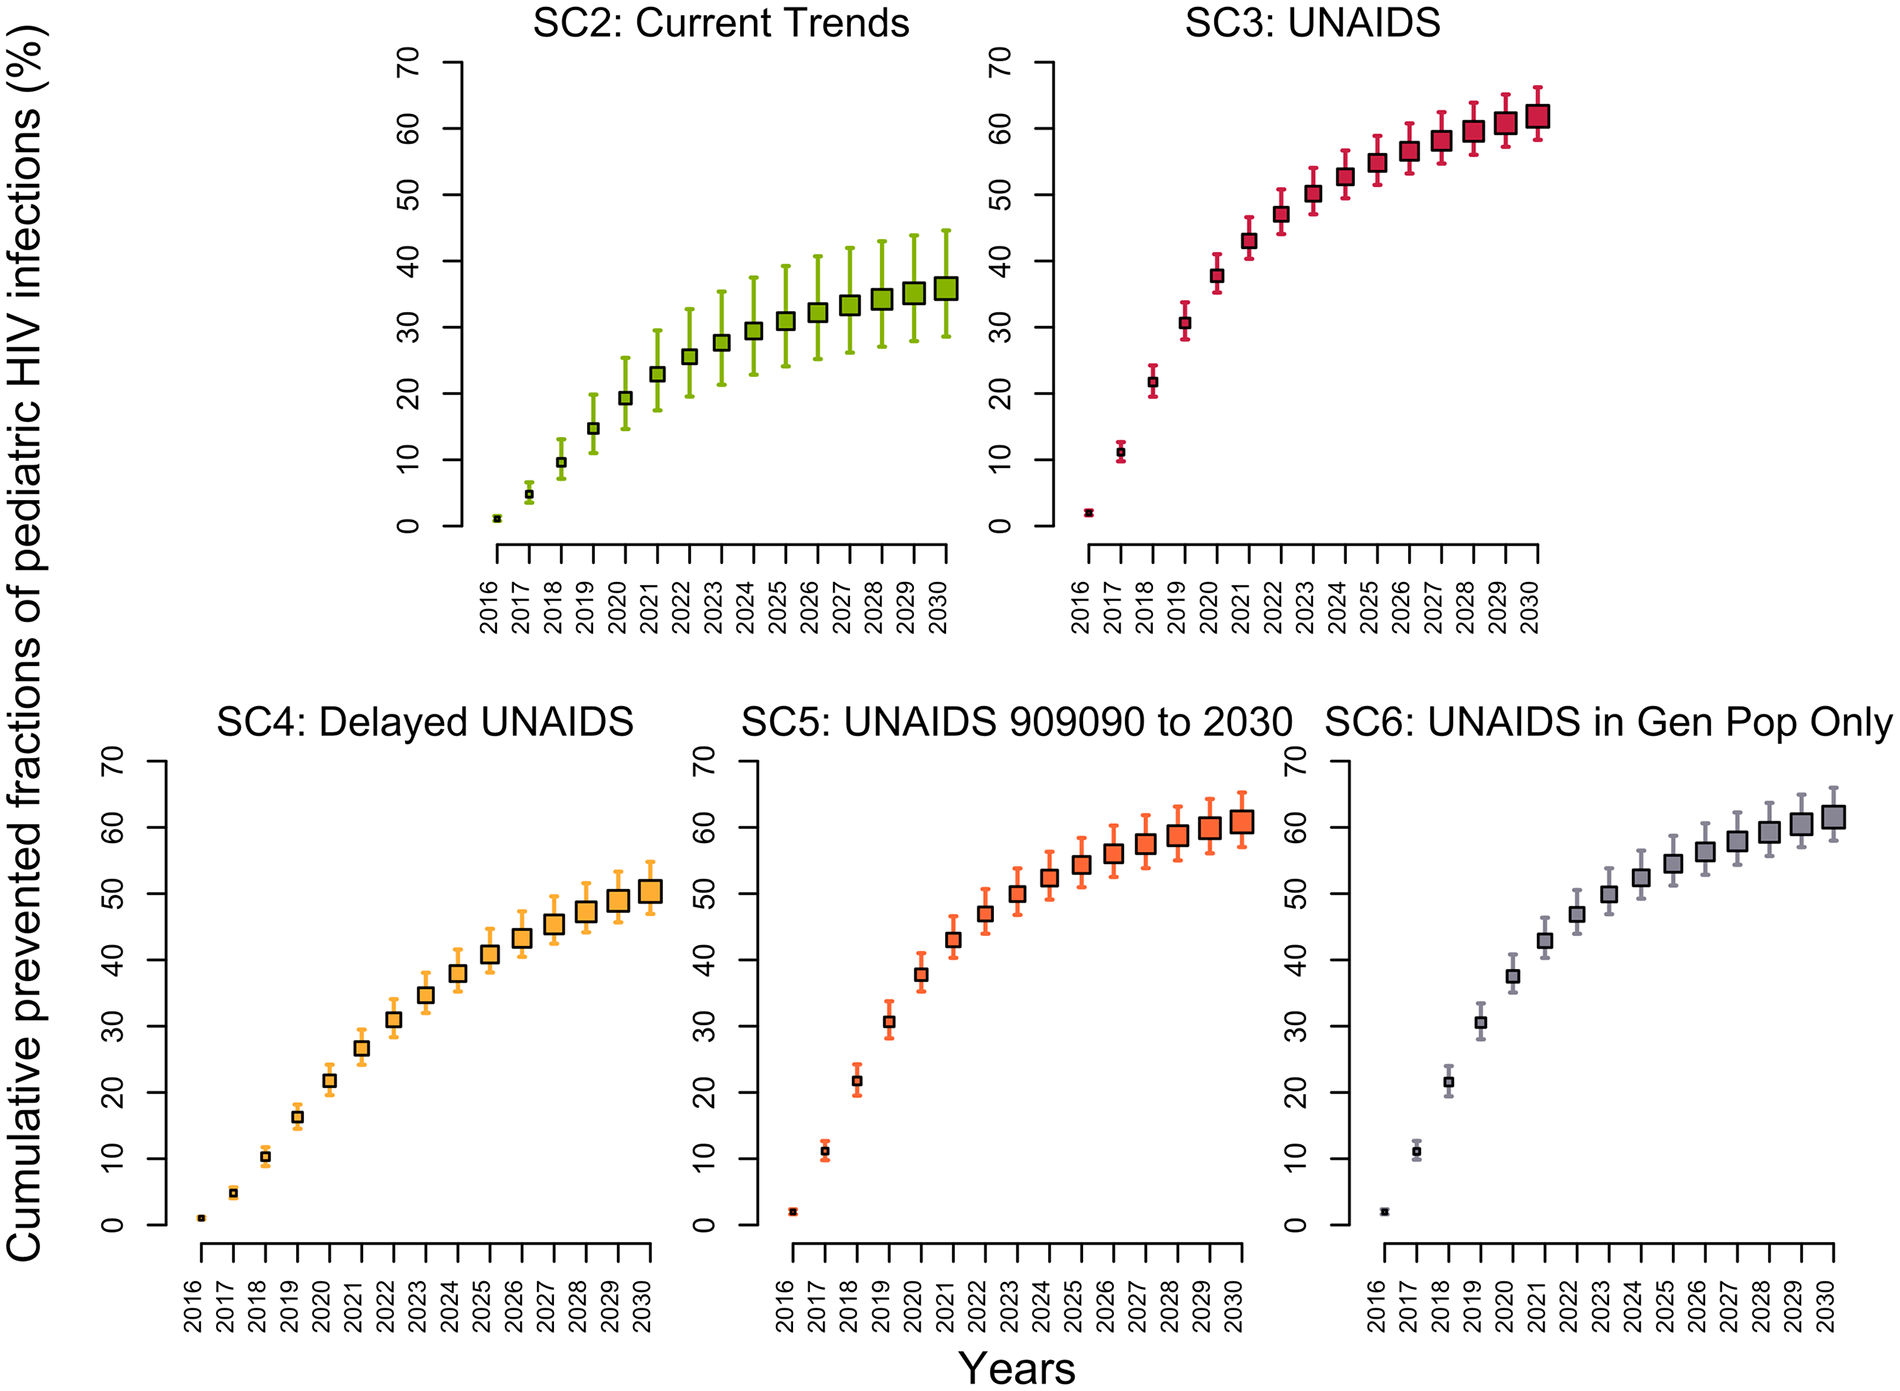 Cumulative fractions of new HIV pediatric infections prevented (medians and 95% credible intervals) in Côte d'Ivoire between 2015 and 2030 for different intervention scenarios using the 2015 intervention coverage levels (scenario 1) as the counterfactual.